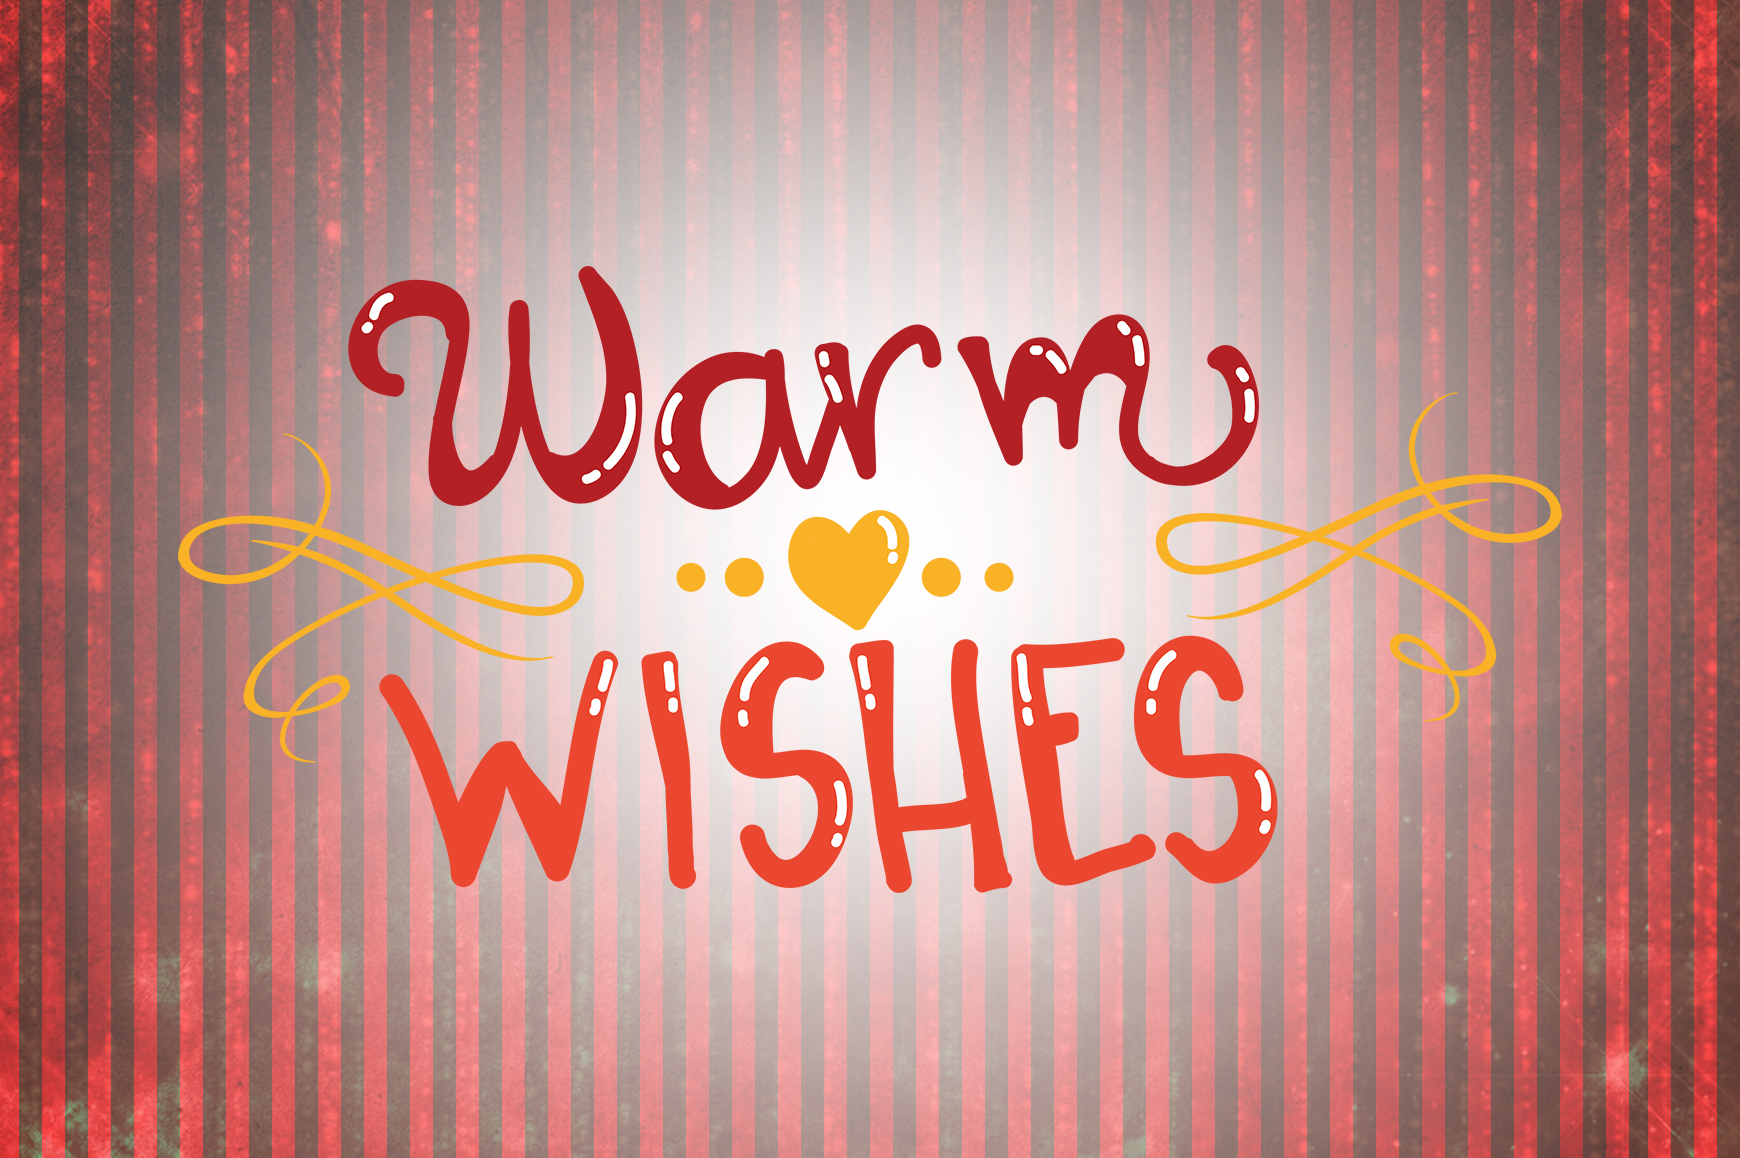 Download Free Warm Wishes Christmas Quotes Graphic By Wienscollection for Cricut Explore, Silhouette and other cutting machines.